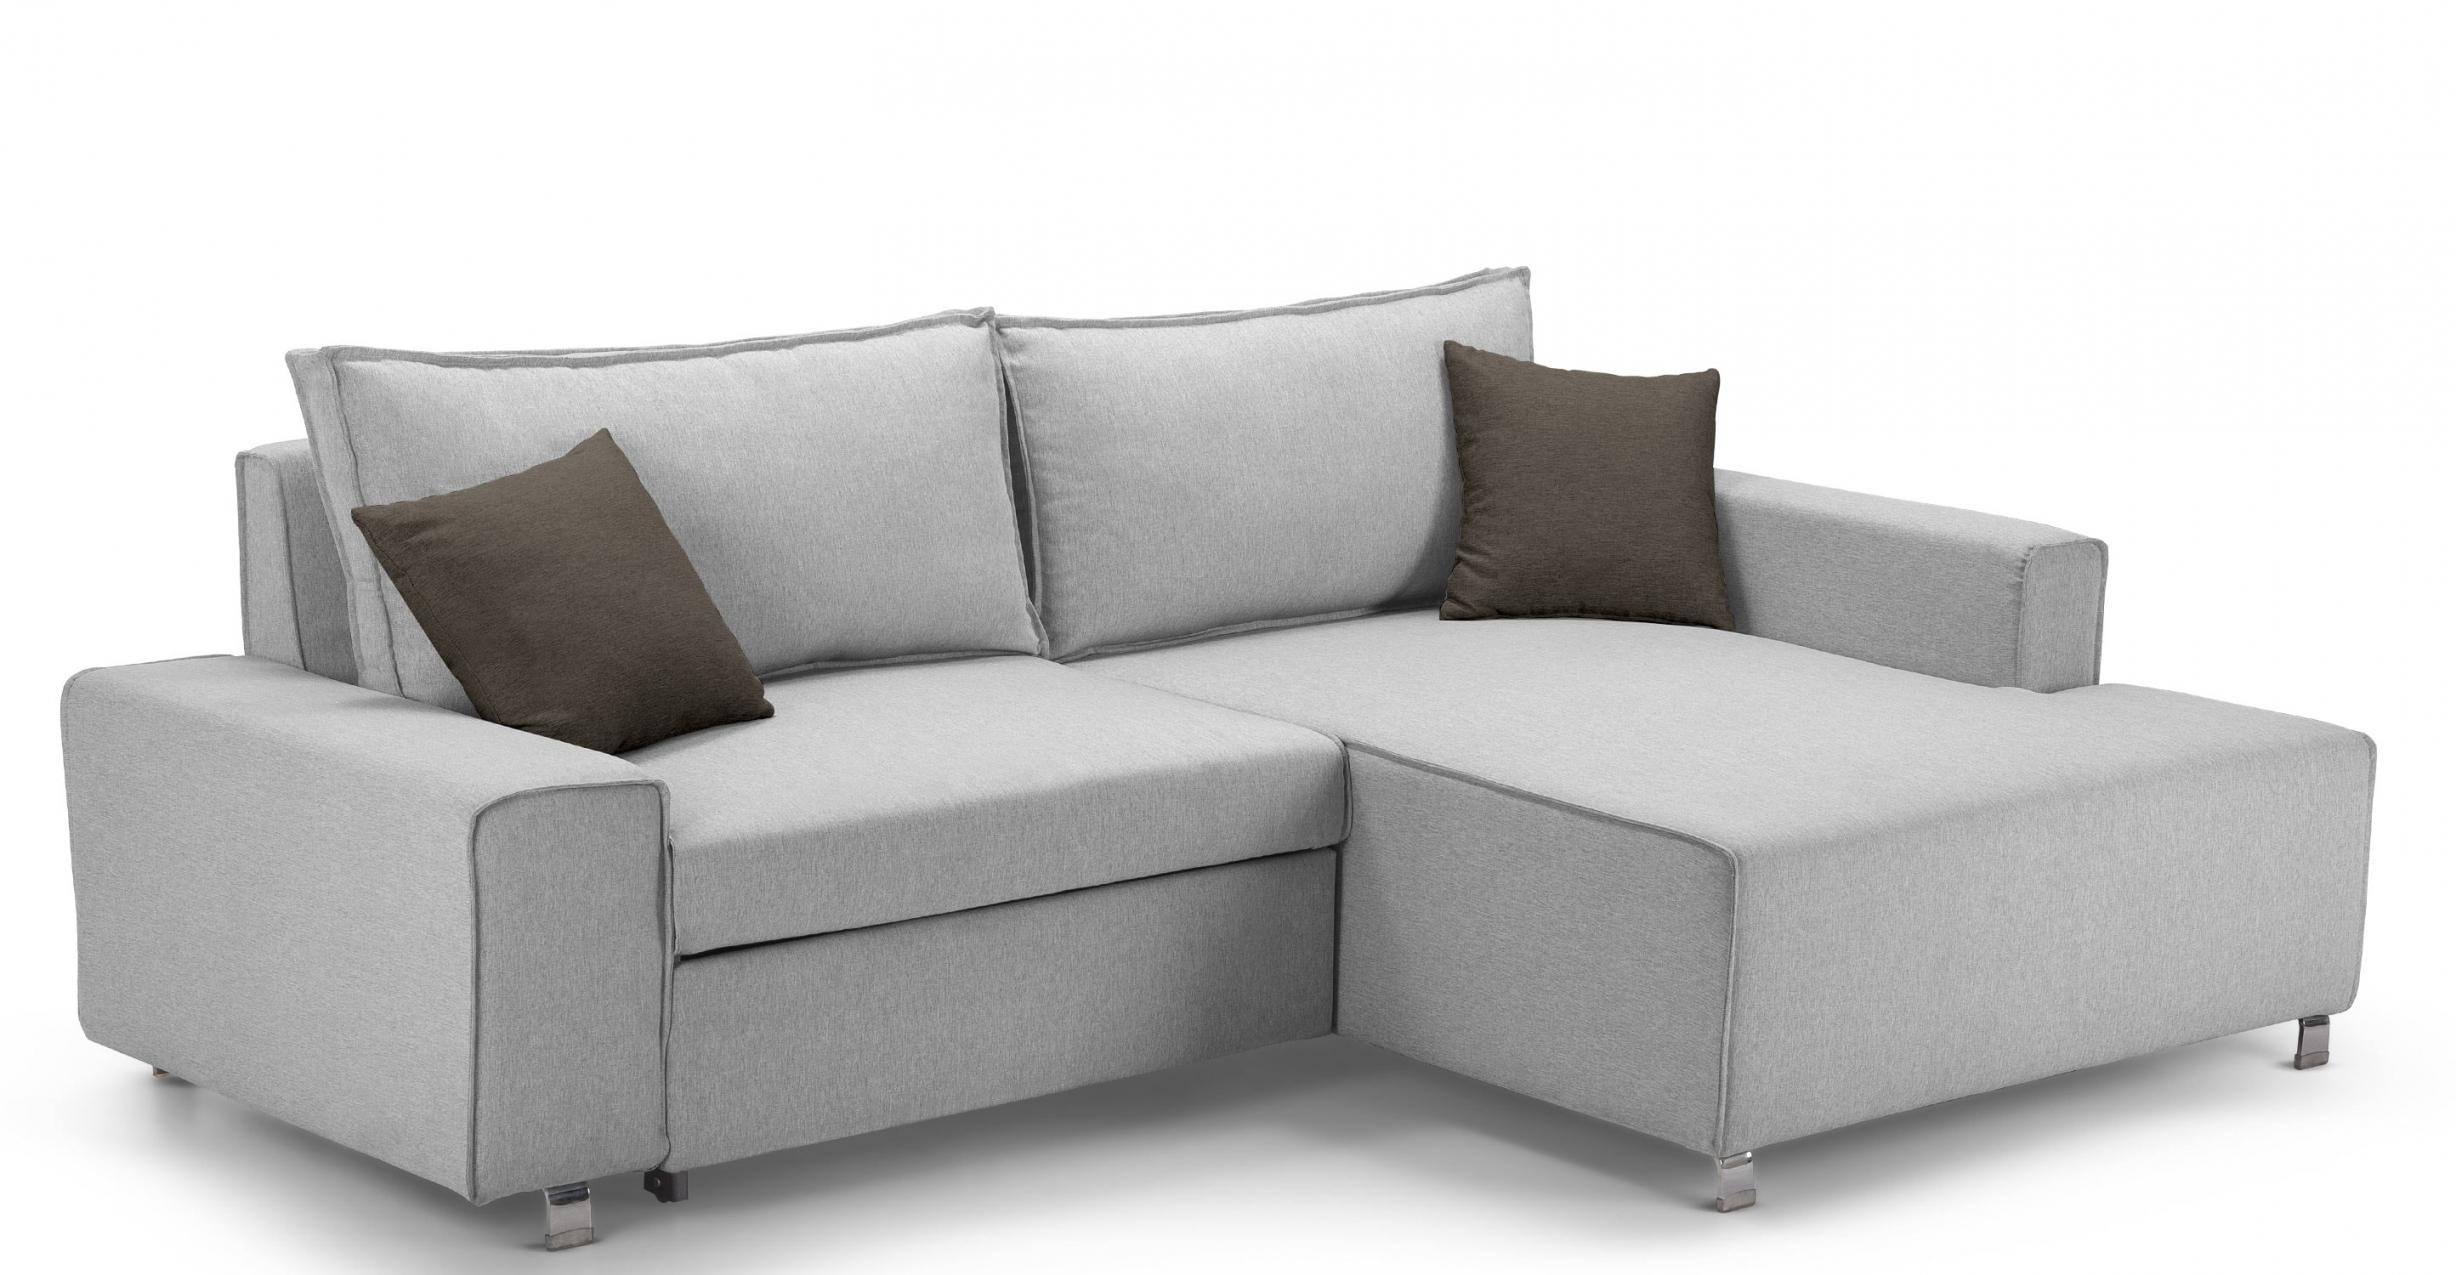 Lovely Corner Sofa Beds For Sale – Merciarescue With Regard To Corner Sofa Bed Sale (Image 13 of 20)